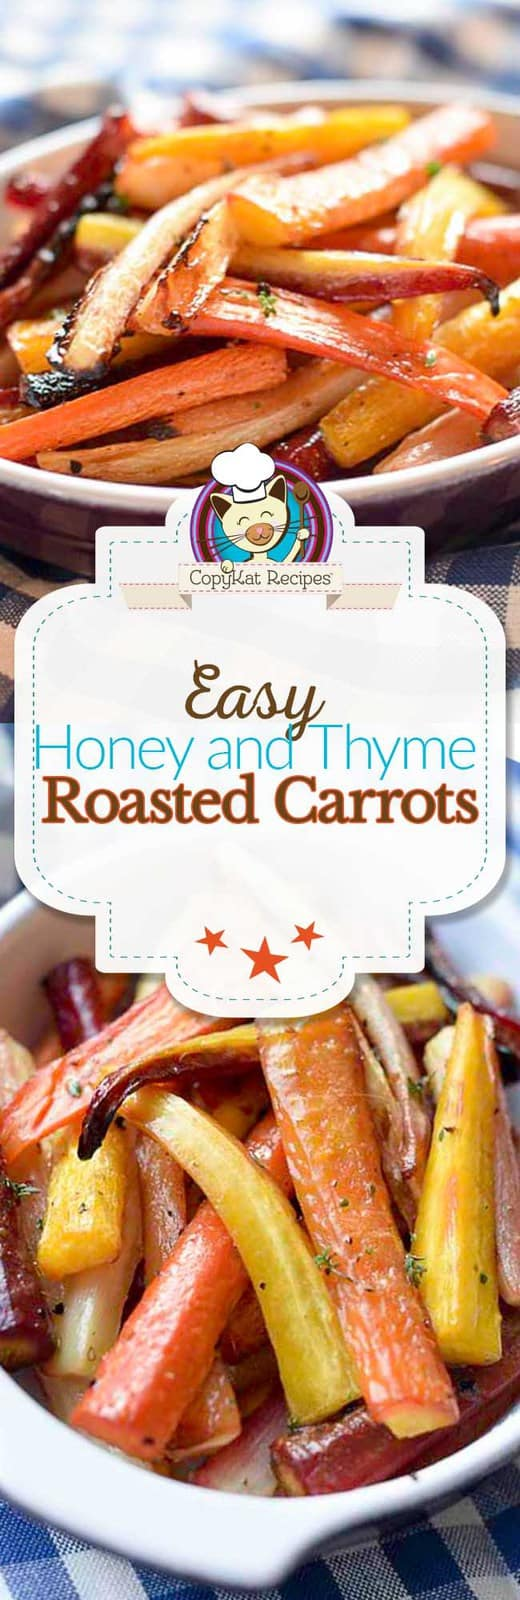 Honey and Thyme roasted carrots are simply delicious and so easy to make. Step by step instructions on how to make these tasty carrots.